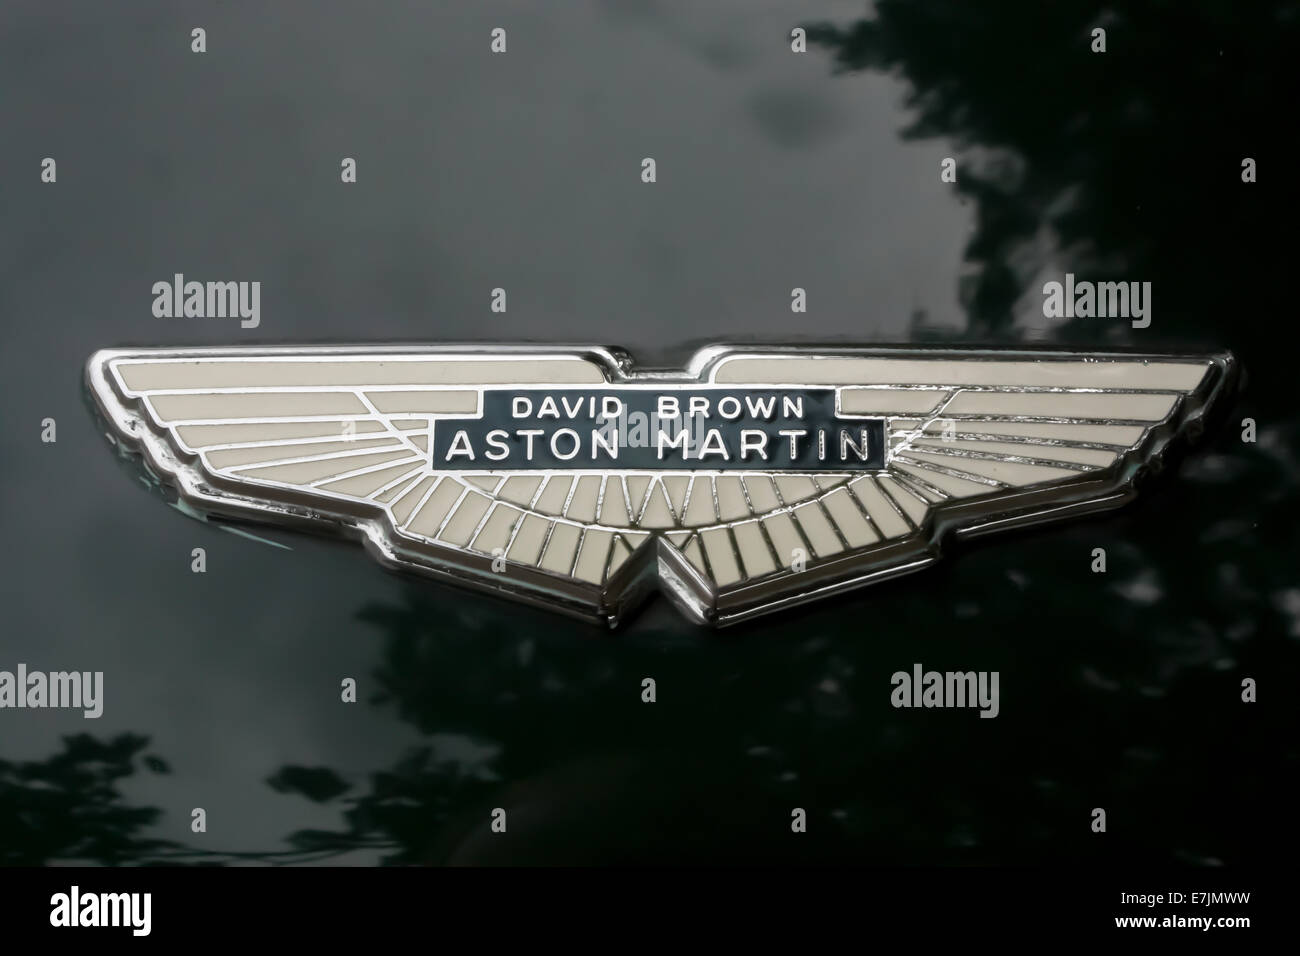 Aston Martin David Brown Badge on a DB4 at Silverstone Stock Photo